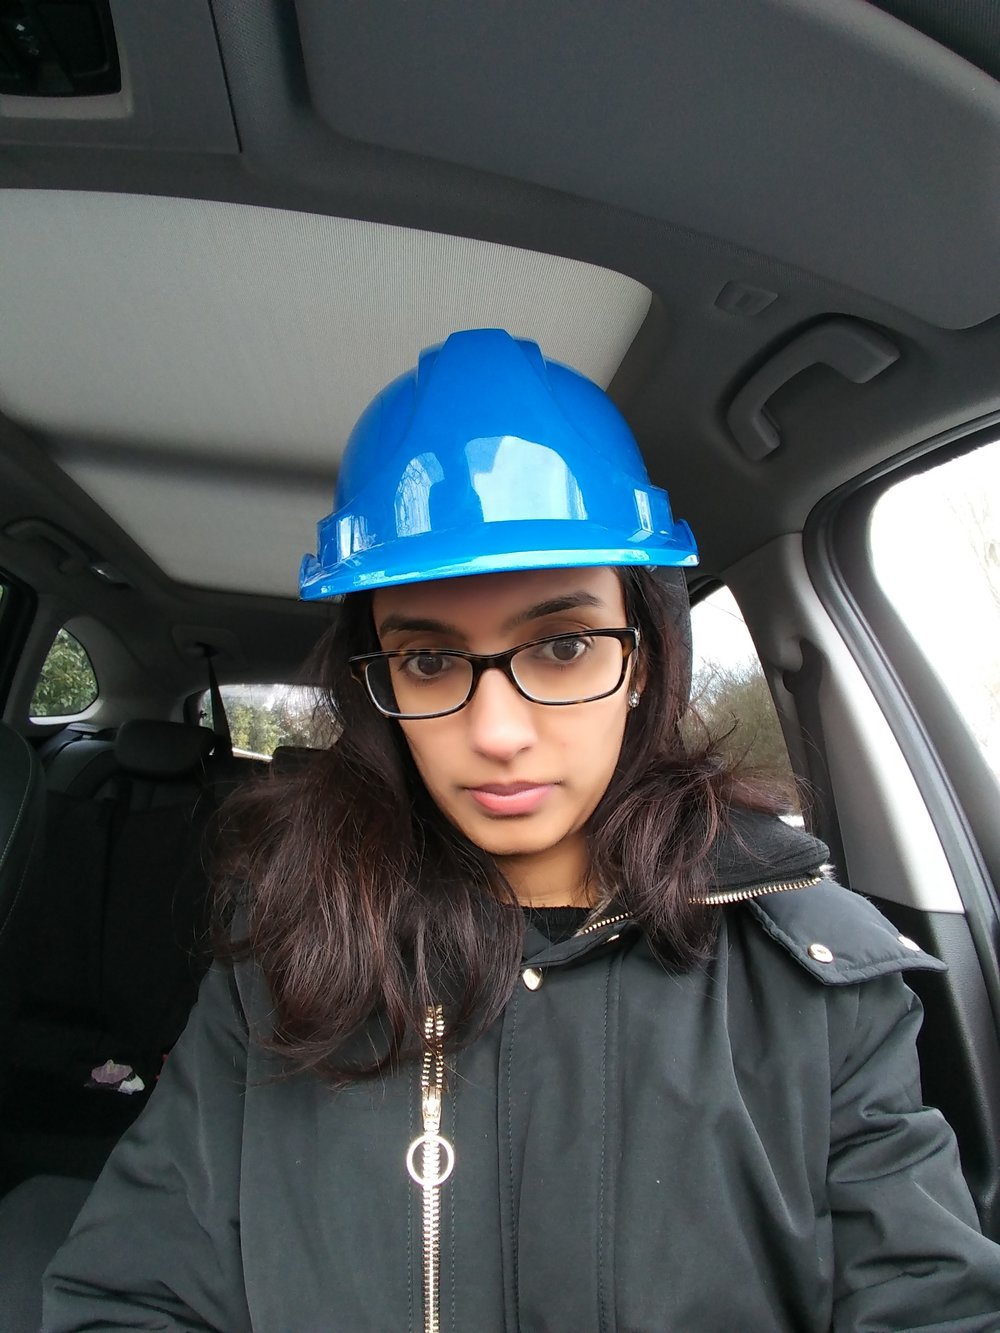 This is me with The Blue feather hat on site as pm (safety first!)